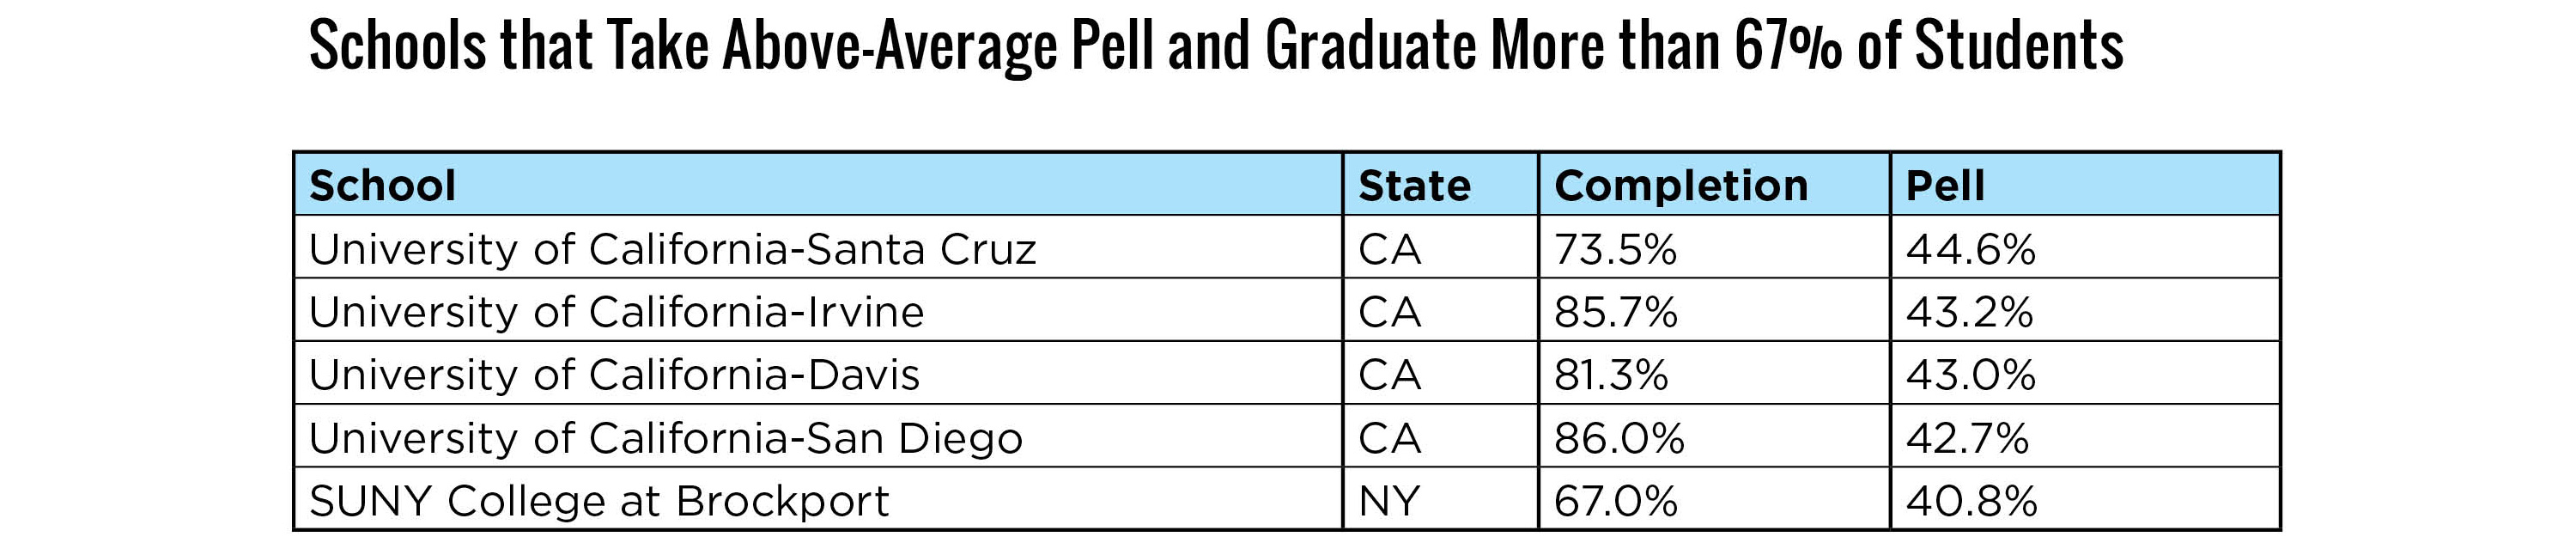 Above Average Pell Schools